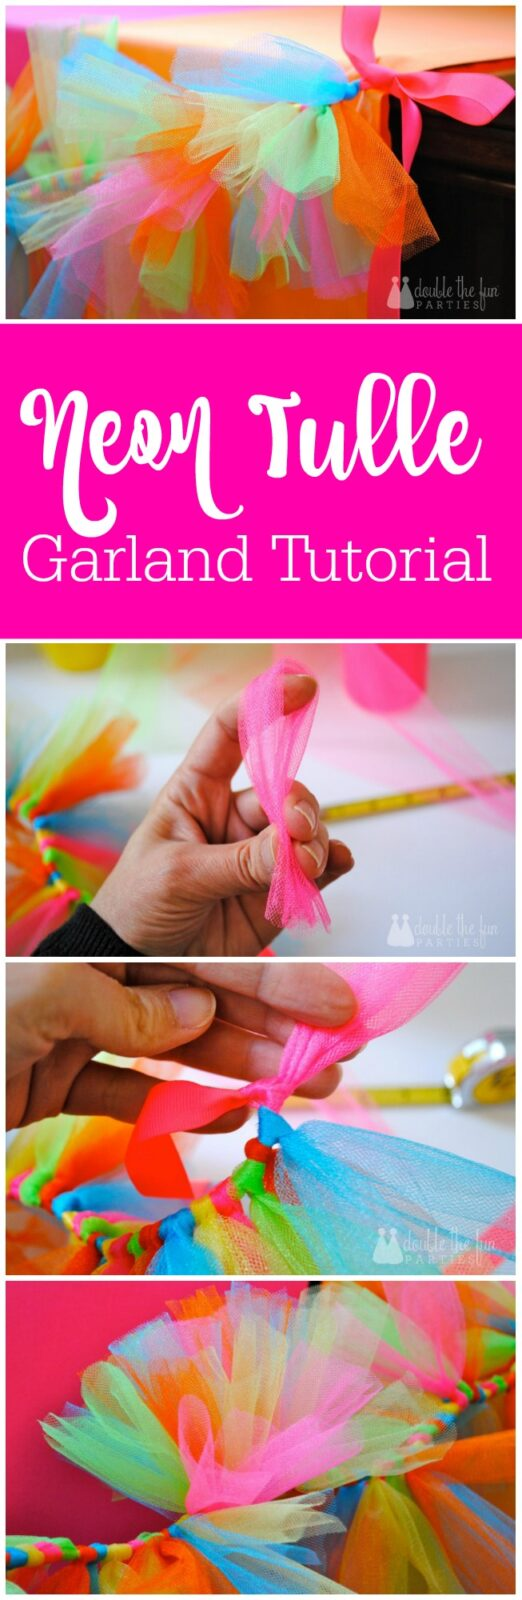 neon tulle garland tutorial by The Party Teacher